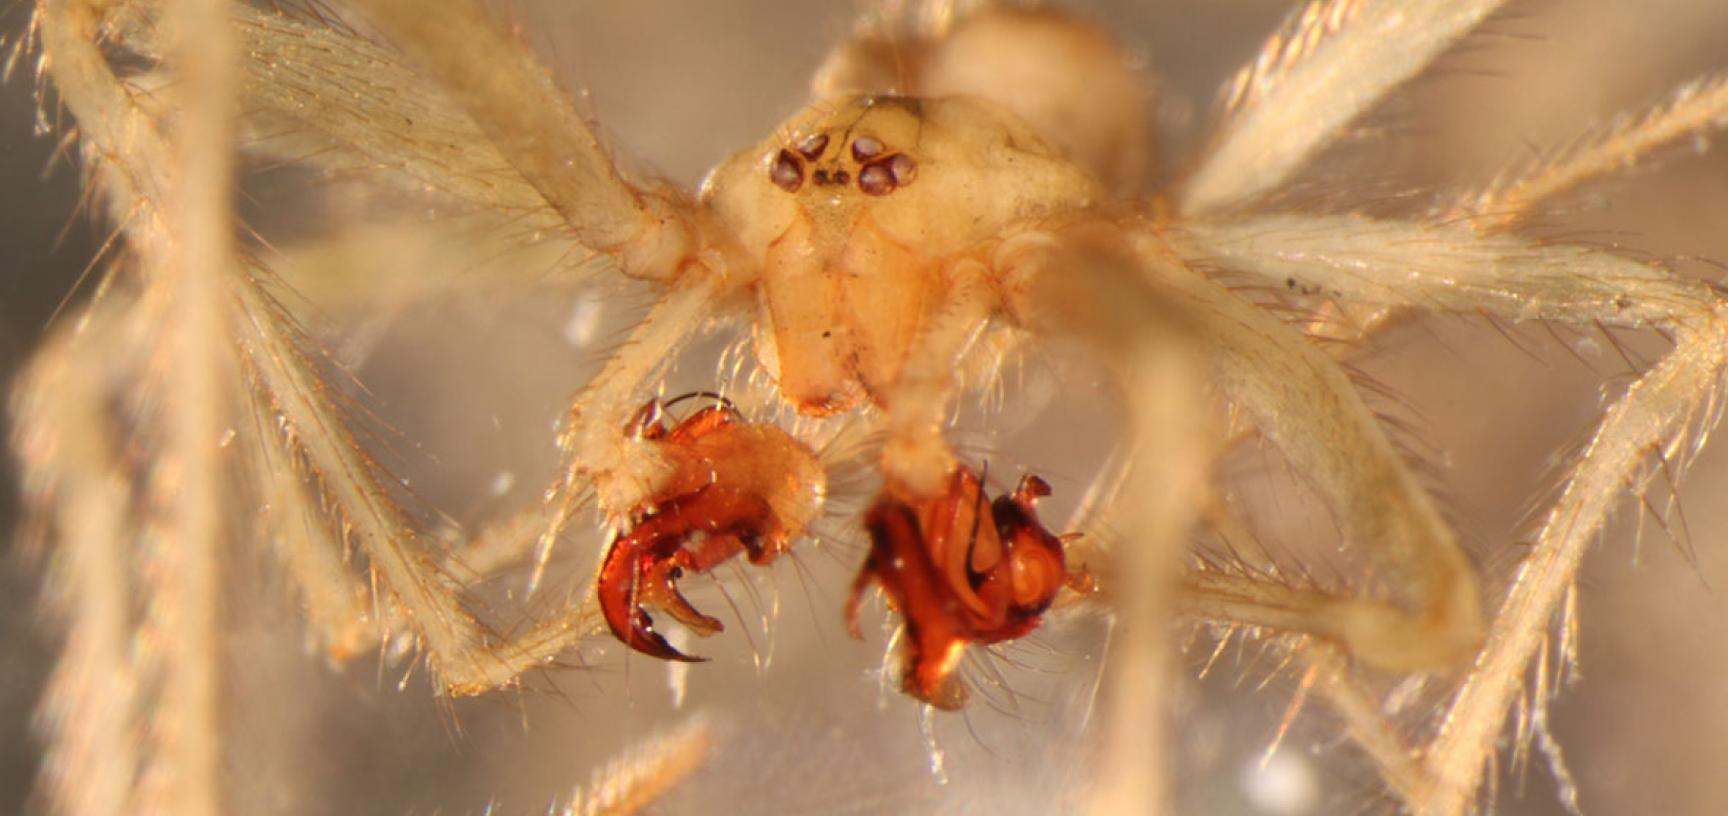 Male Nesticus georgia, with elaborately structured palps used to transfer sperm